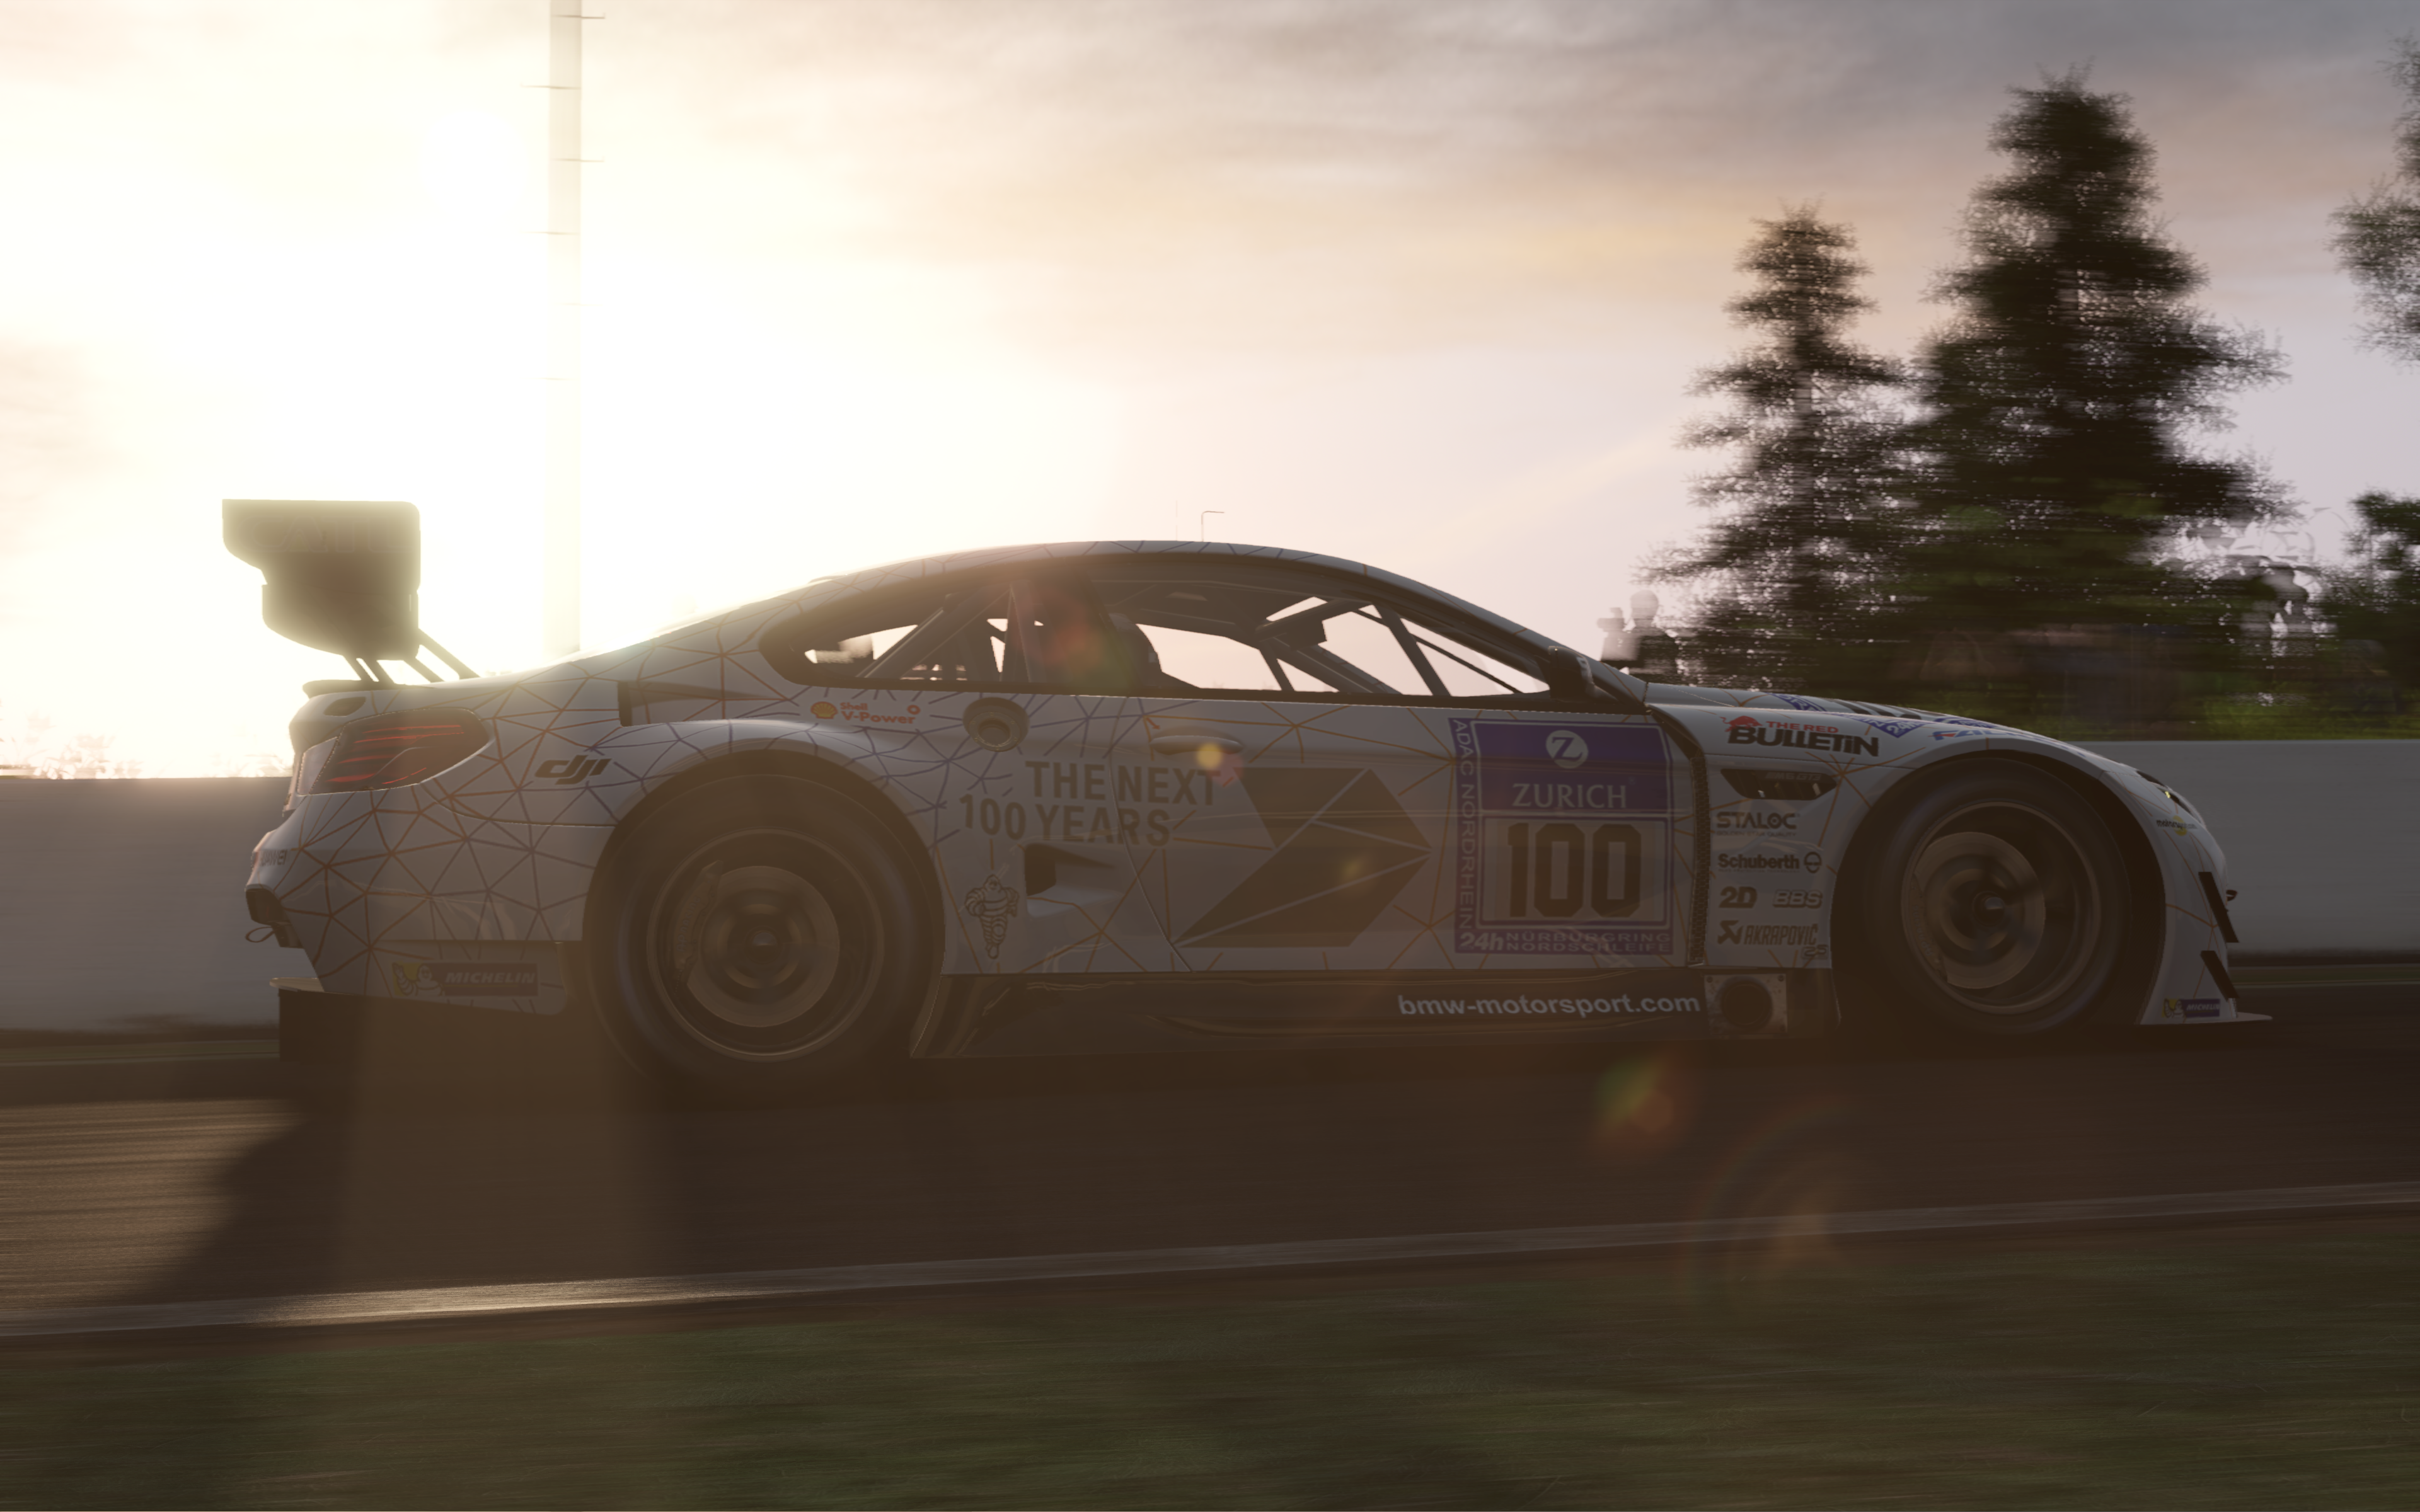 Project cars 2 4k ultra hd wallpaper background image - Project cars 4k wallpaper ...